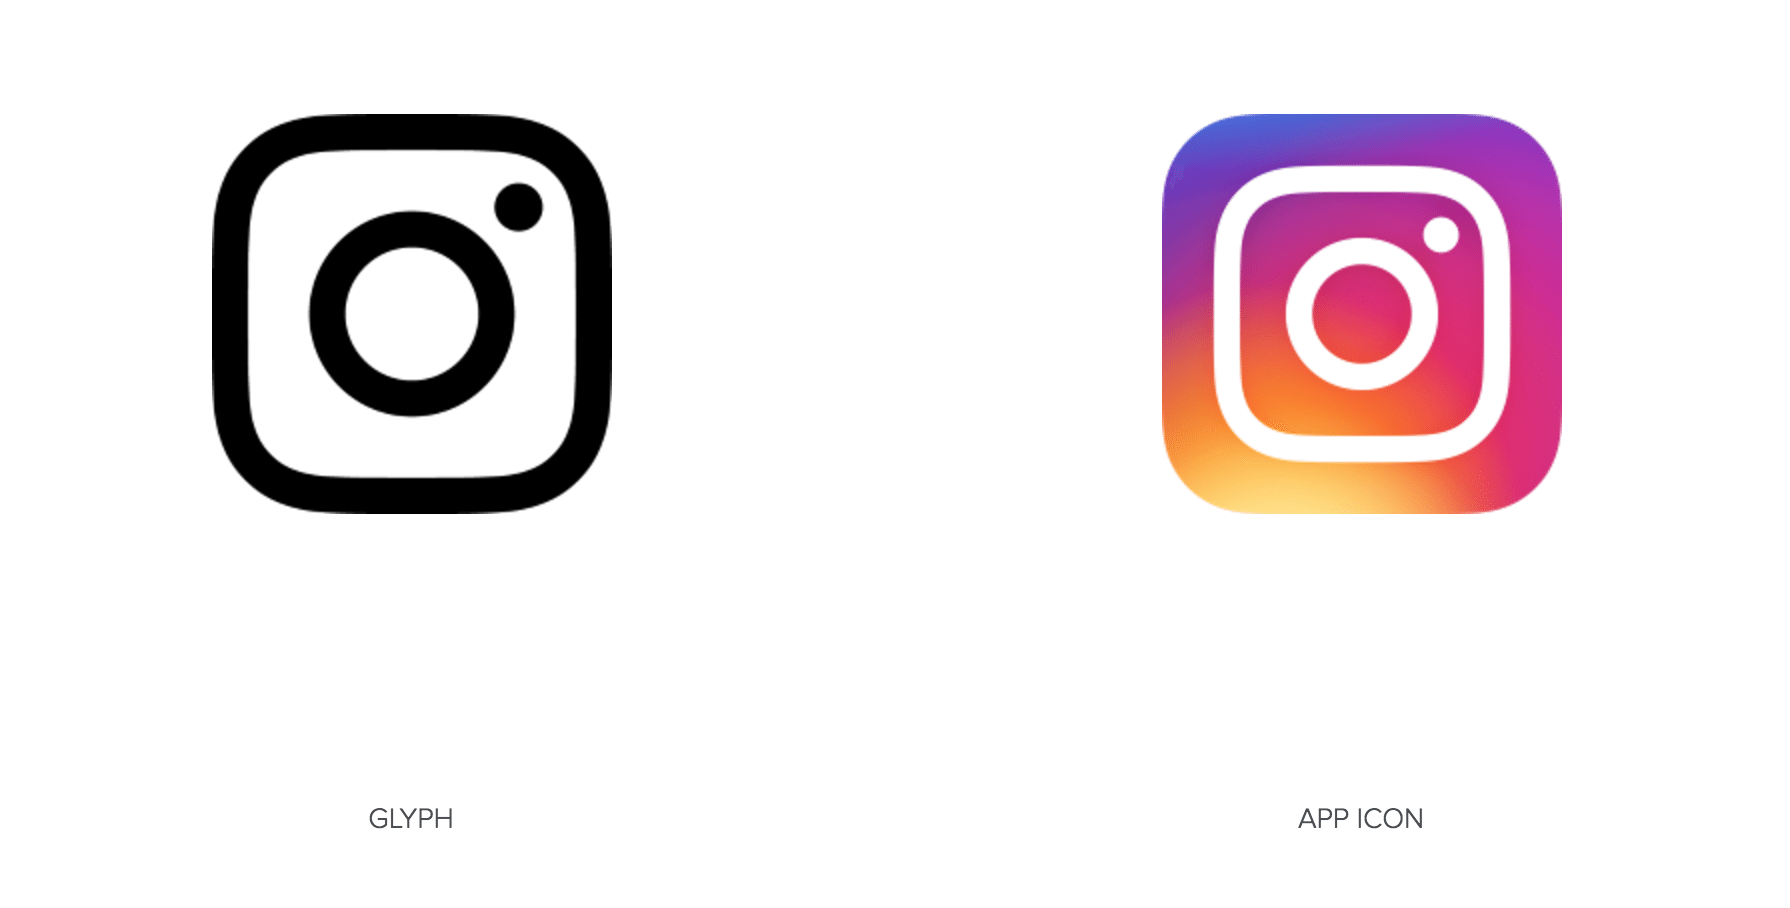 Instagram Logo - Every Social Media Logo You May Want [Free Resource]